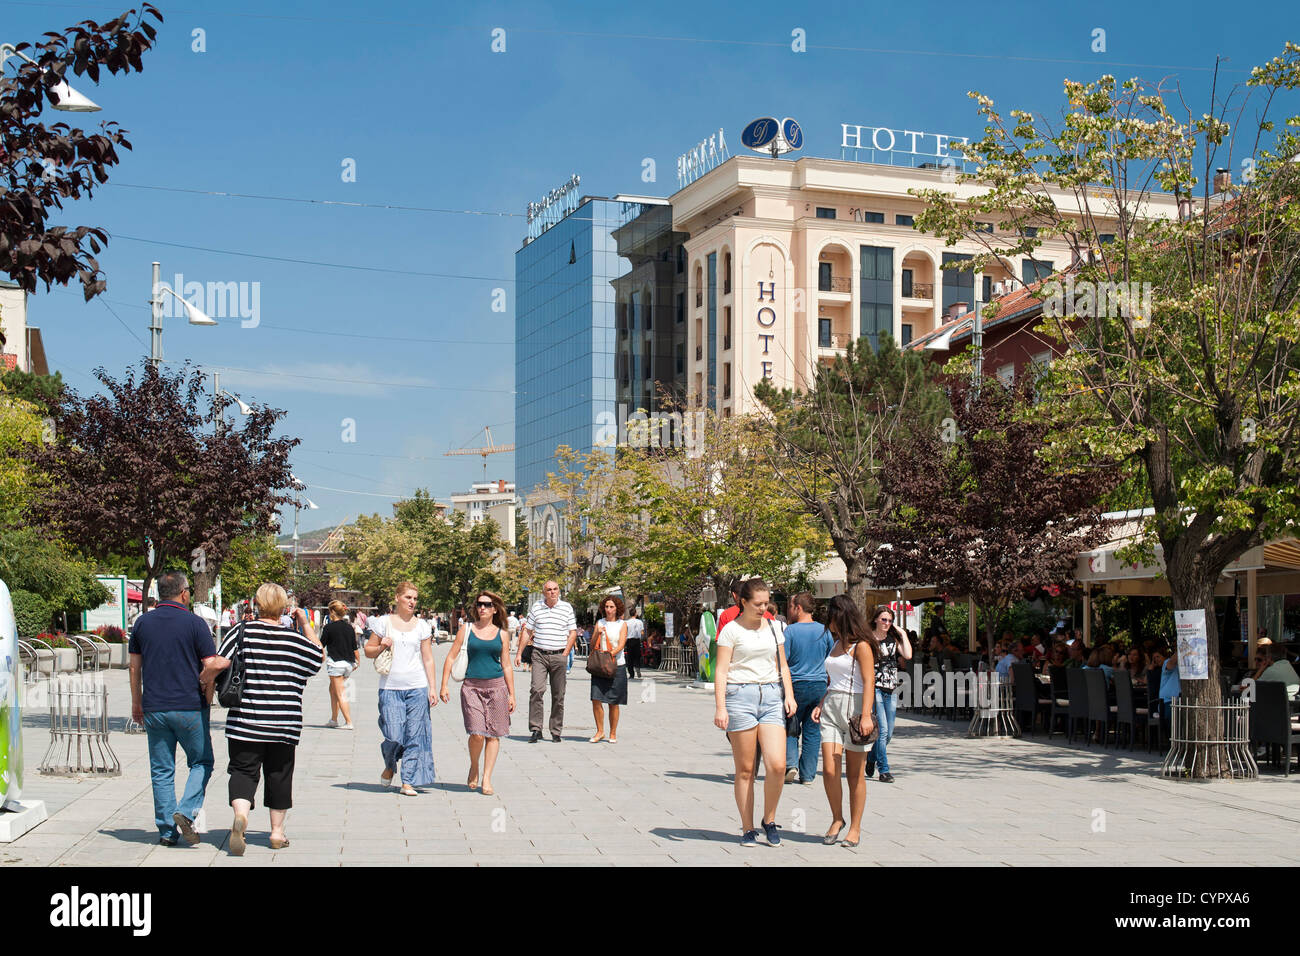 Pedestrians walking along Boulevard Nene Tereza in Pristina, the capital of the Republic of Kosovo. - Stock Image